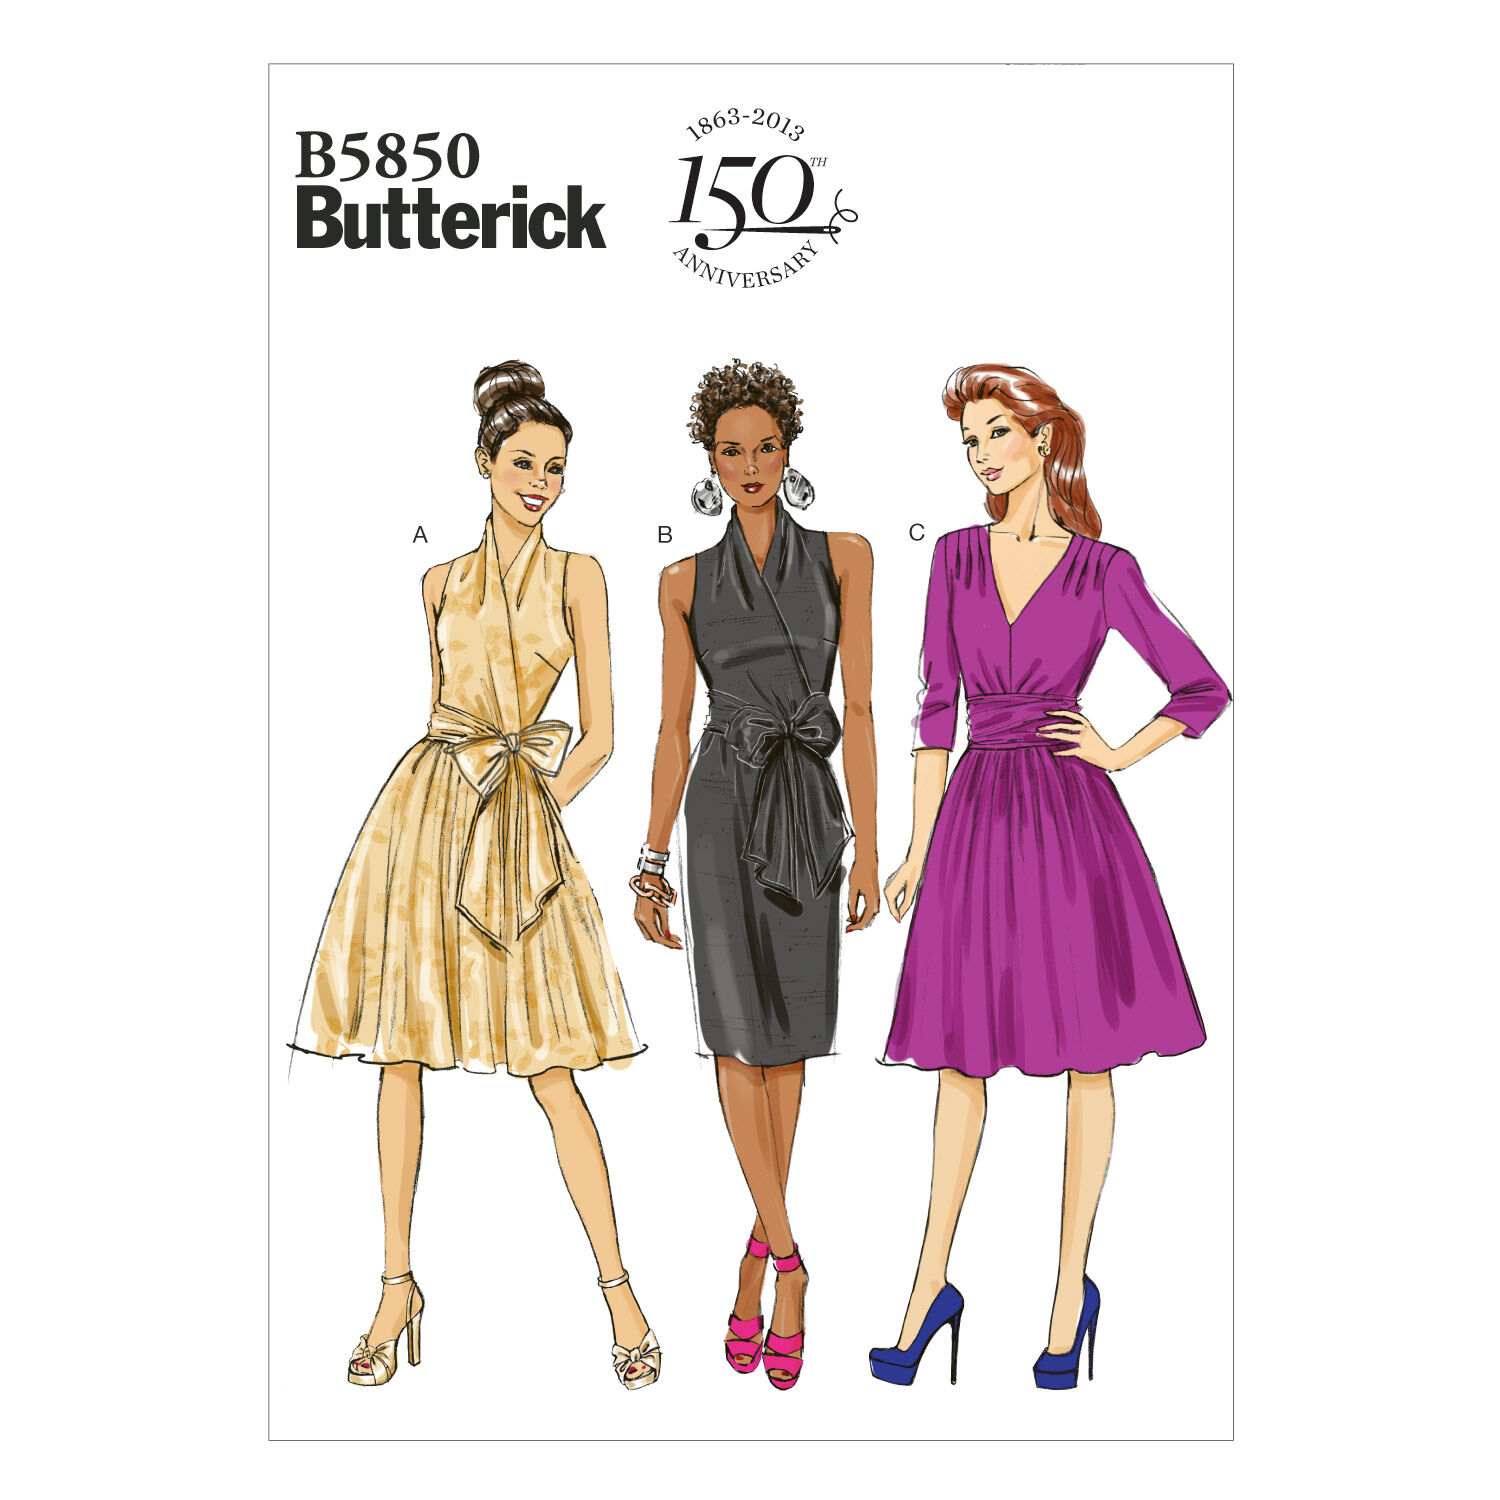 1950s Sewing Patterns | Dresses, Skirts, Tops, Mens Butterick Misses Dress - B5850 $11.37 AT vintagedancer.com